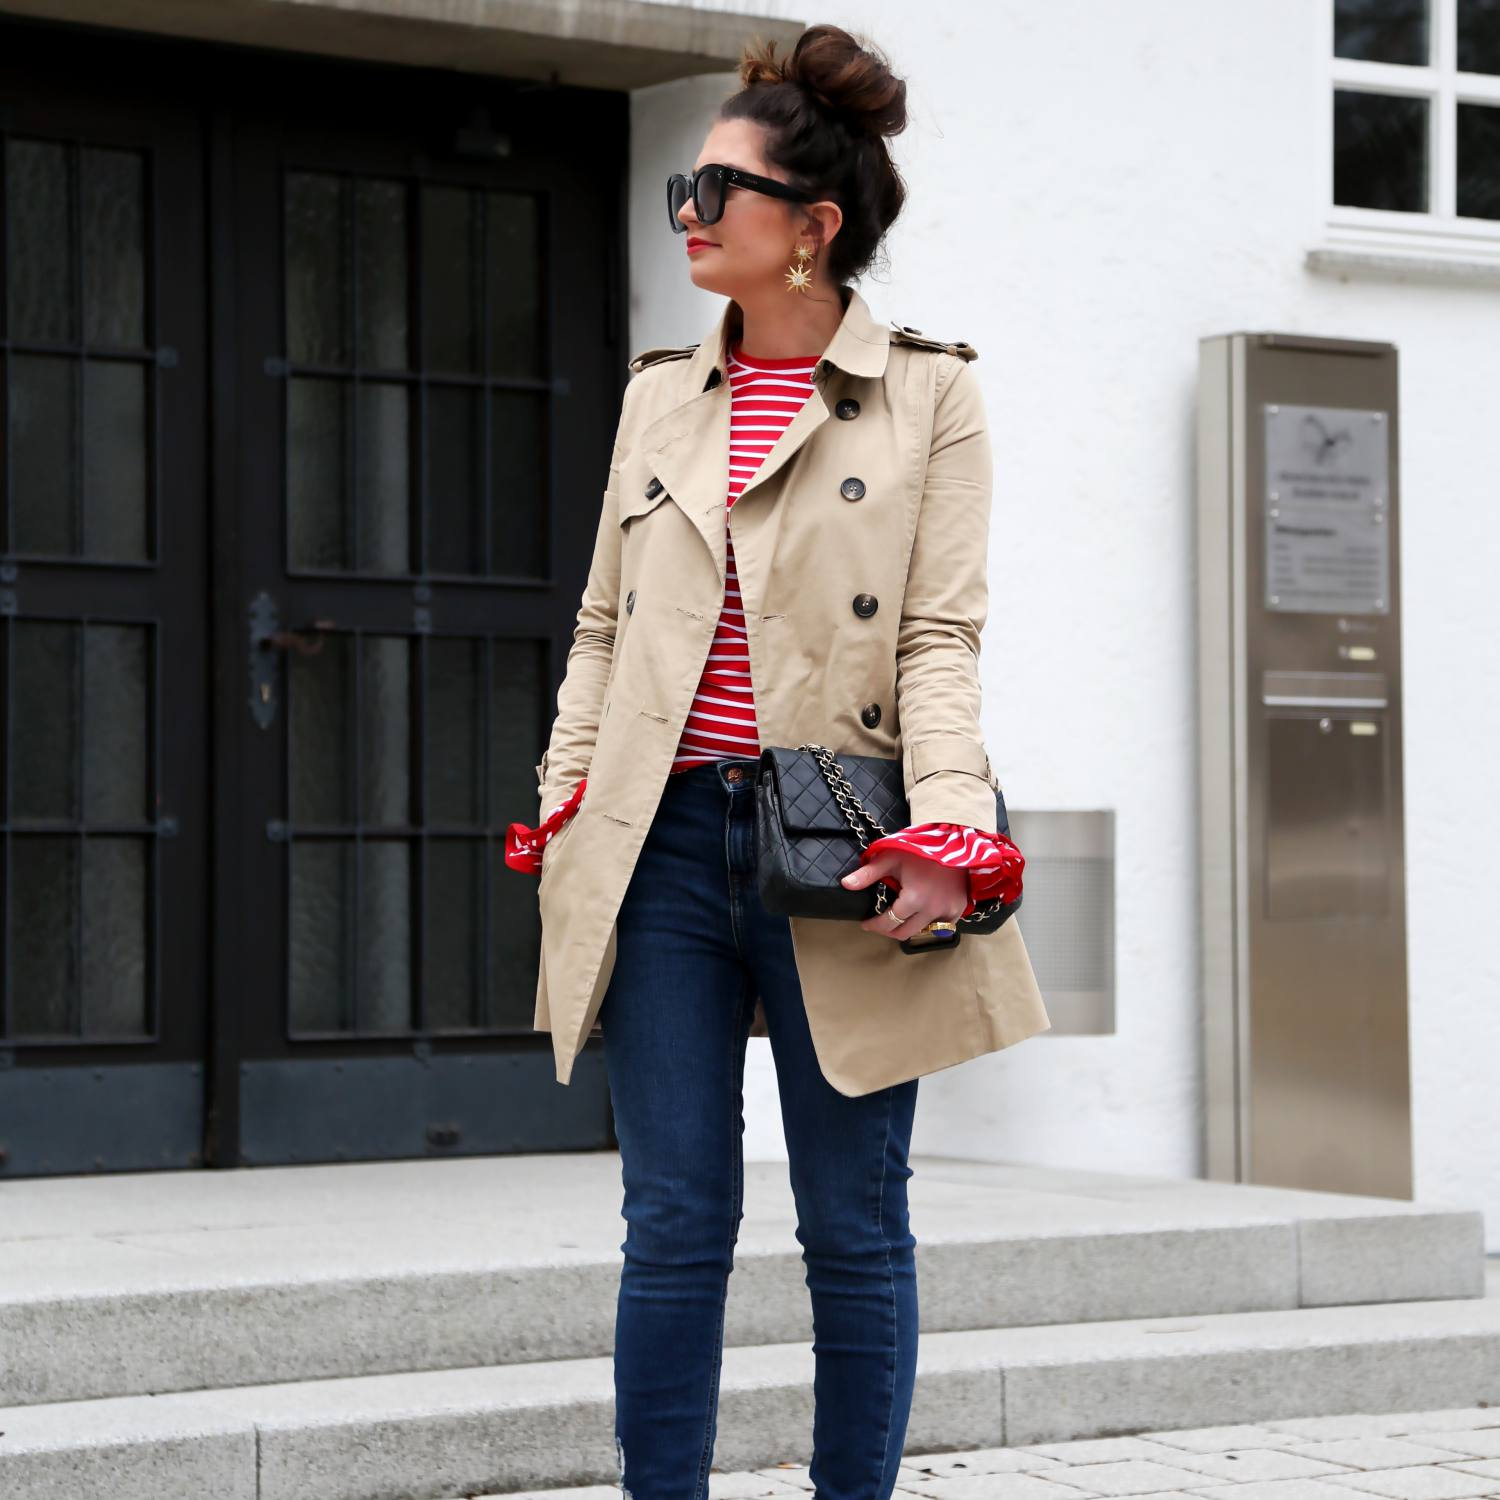 Woman in trench coat and skinny jeans